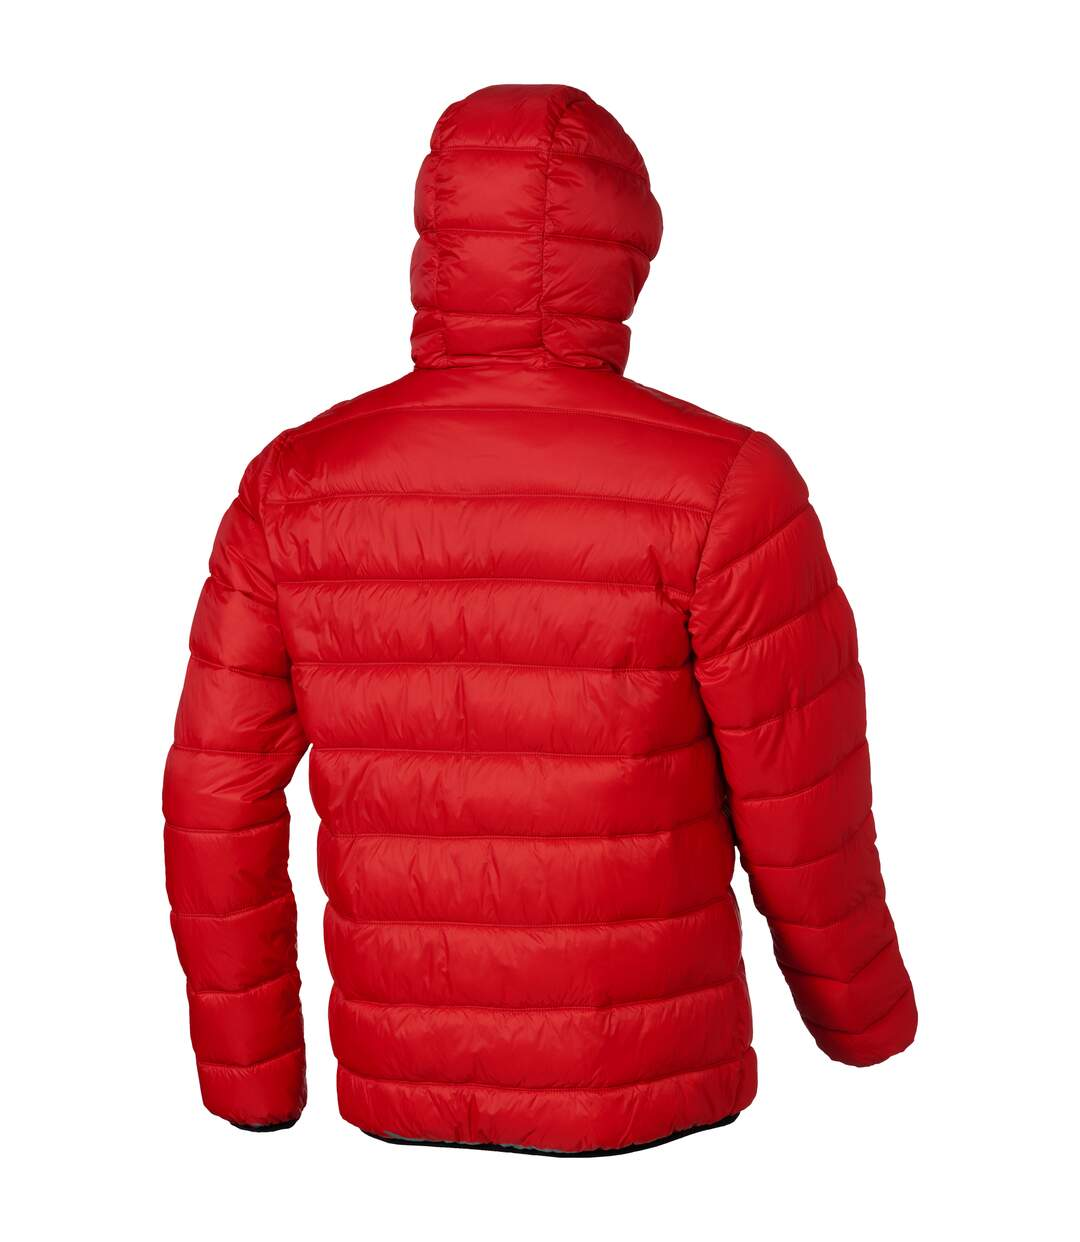 Elevate Mens Norquay Insulated Jacket (Red) - UTPF1916